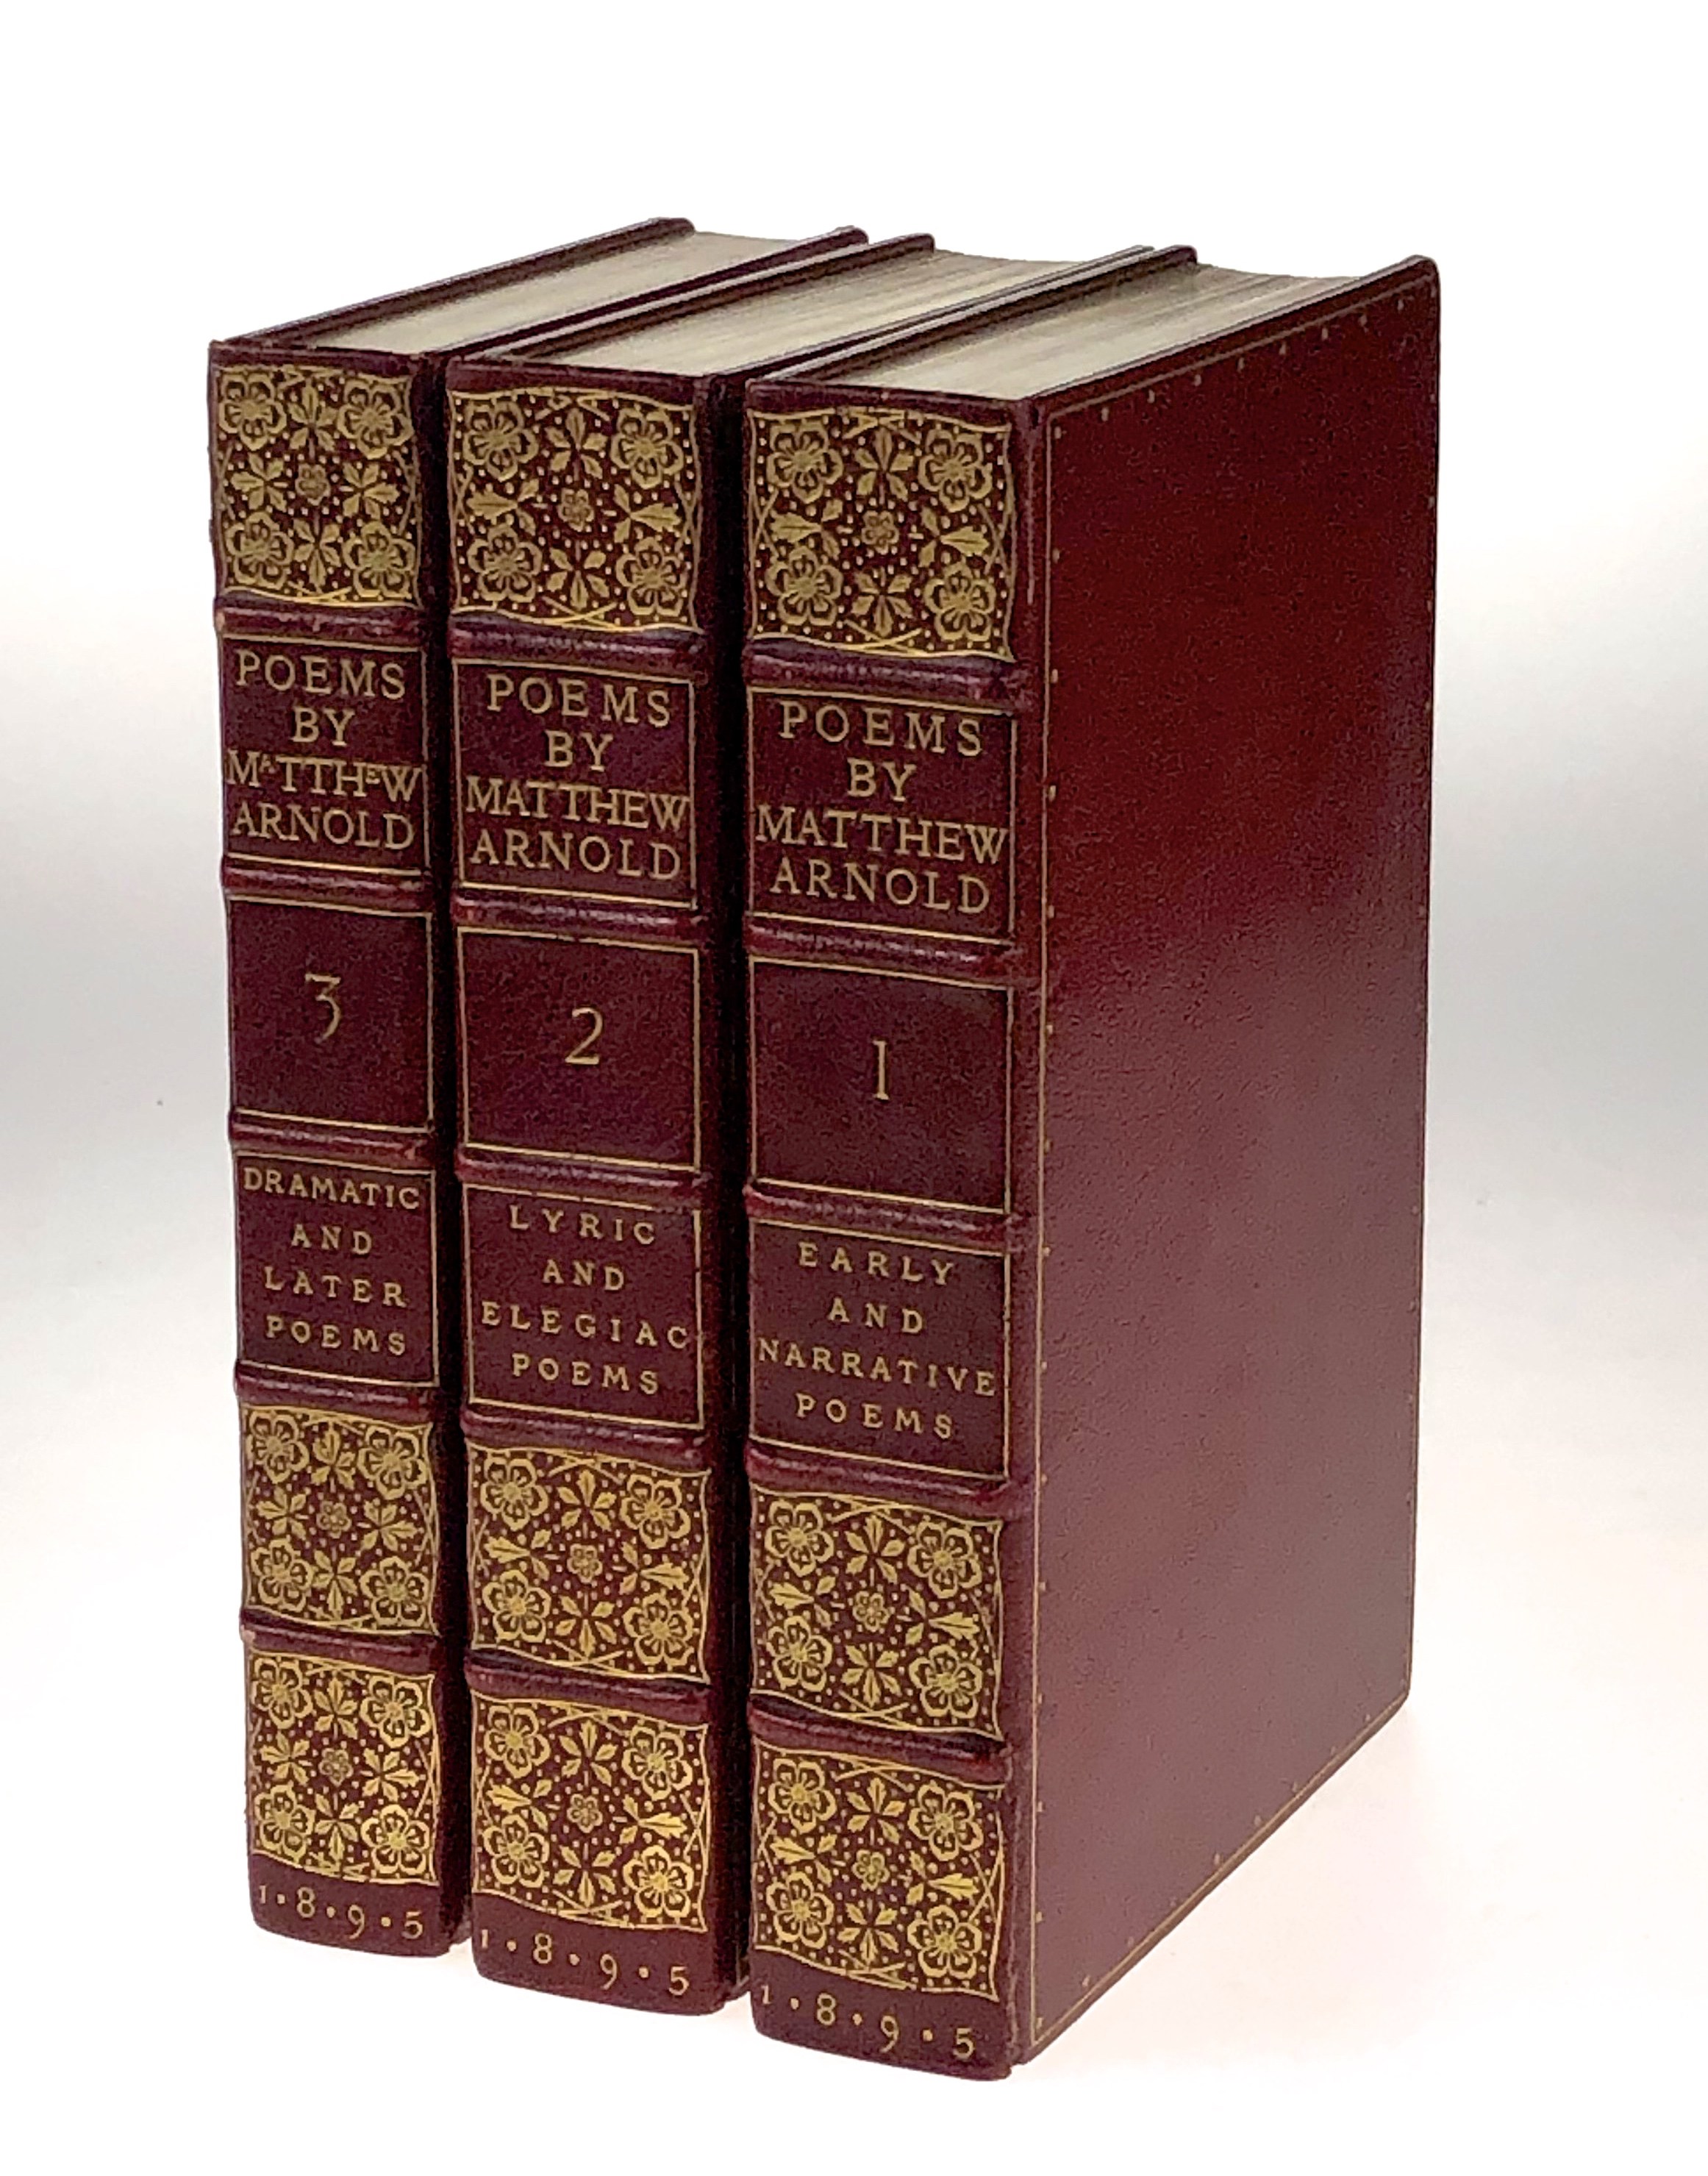 Three Matthew Arnold Volumes in Doves Binding